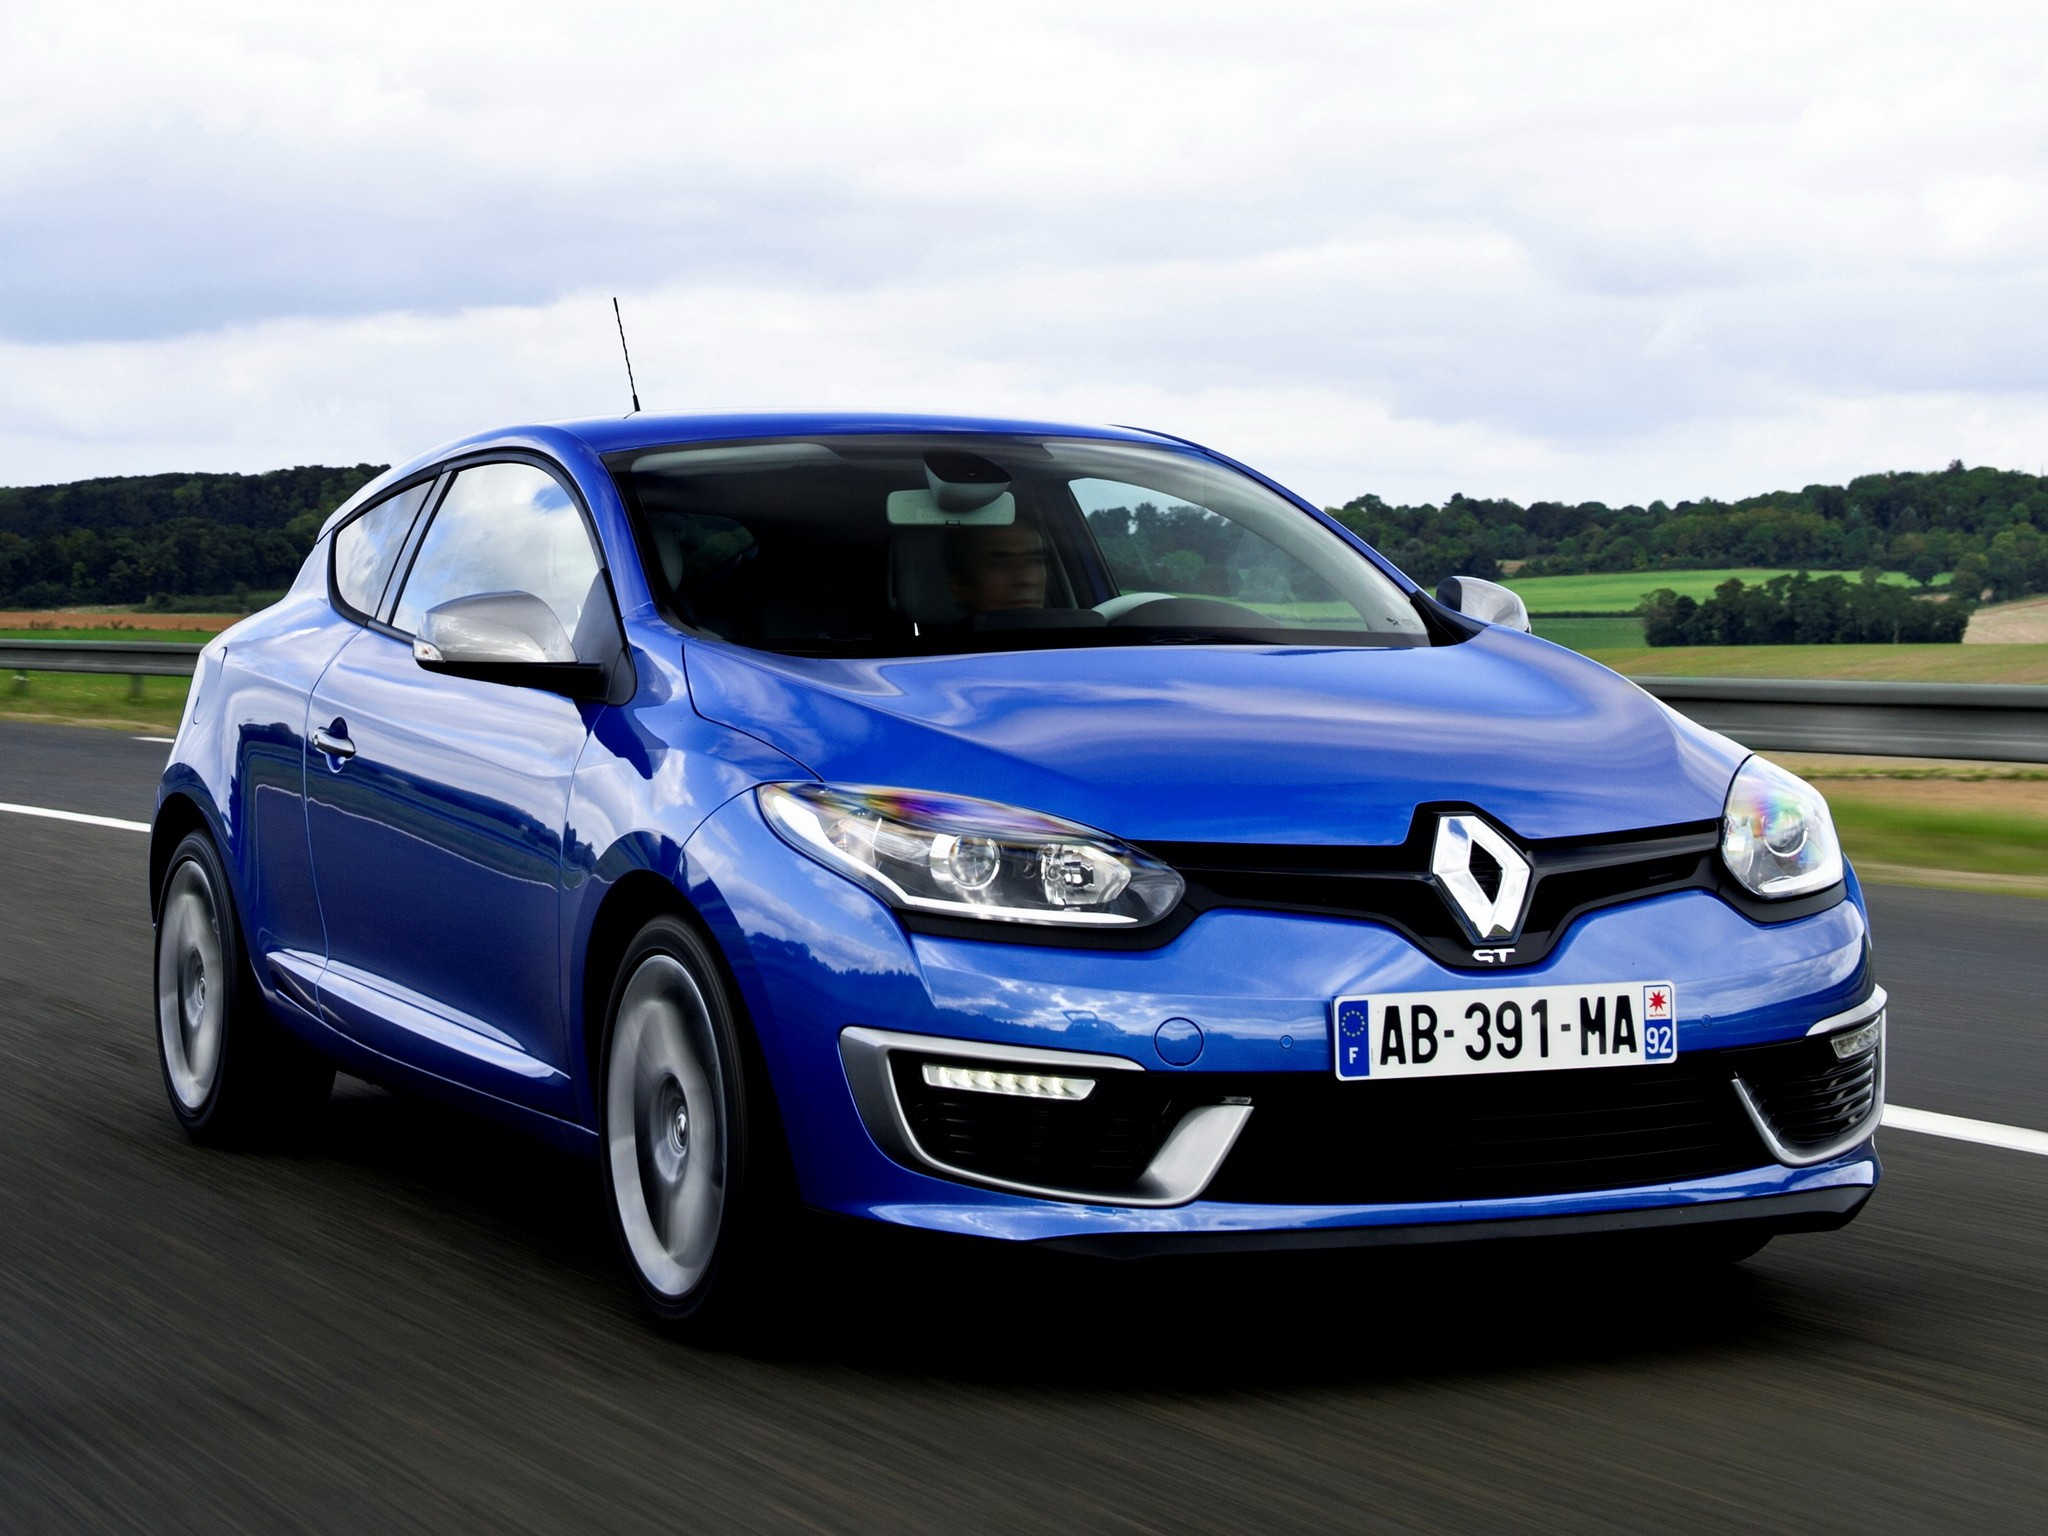 renault megane gt 3 doors specs 2013 2014 2015 autoevolution. Black Bedroom Furniture Sets. Home Design Ideas